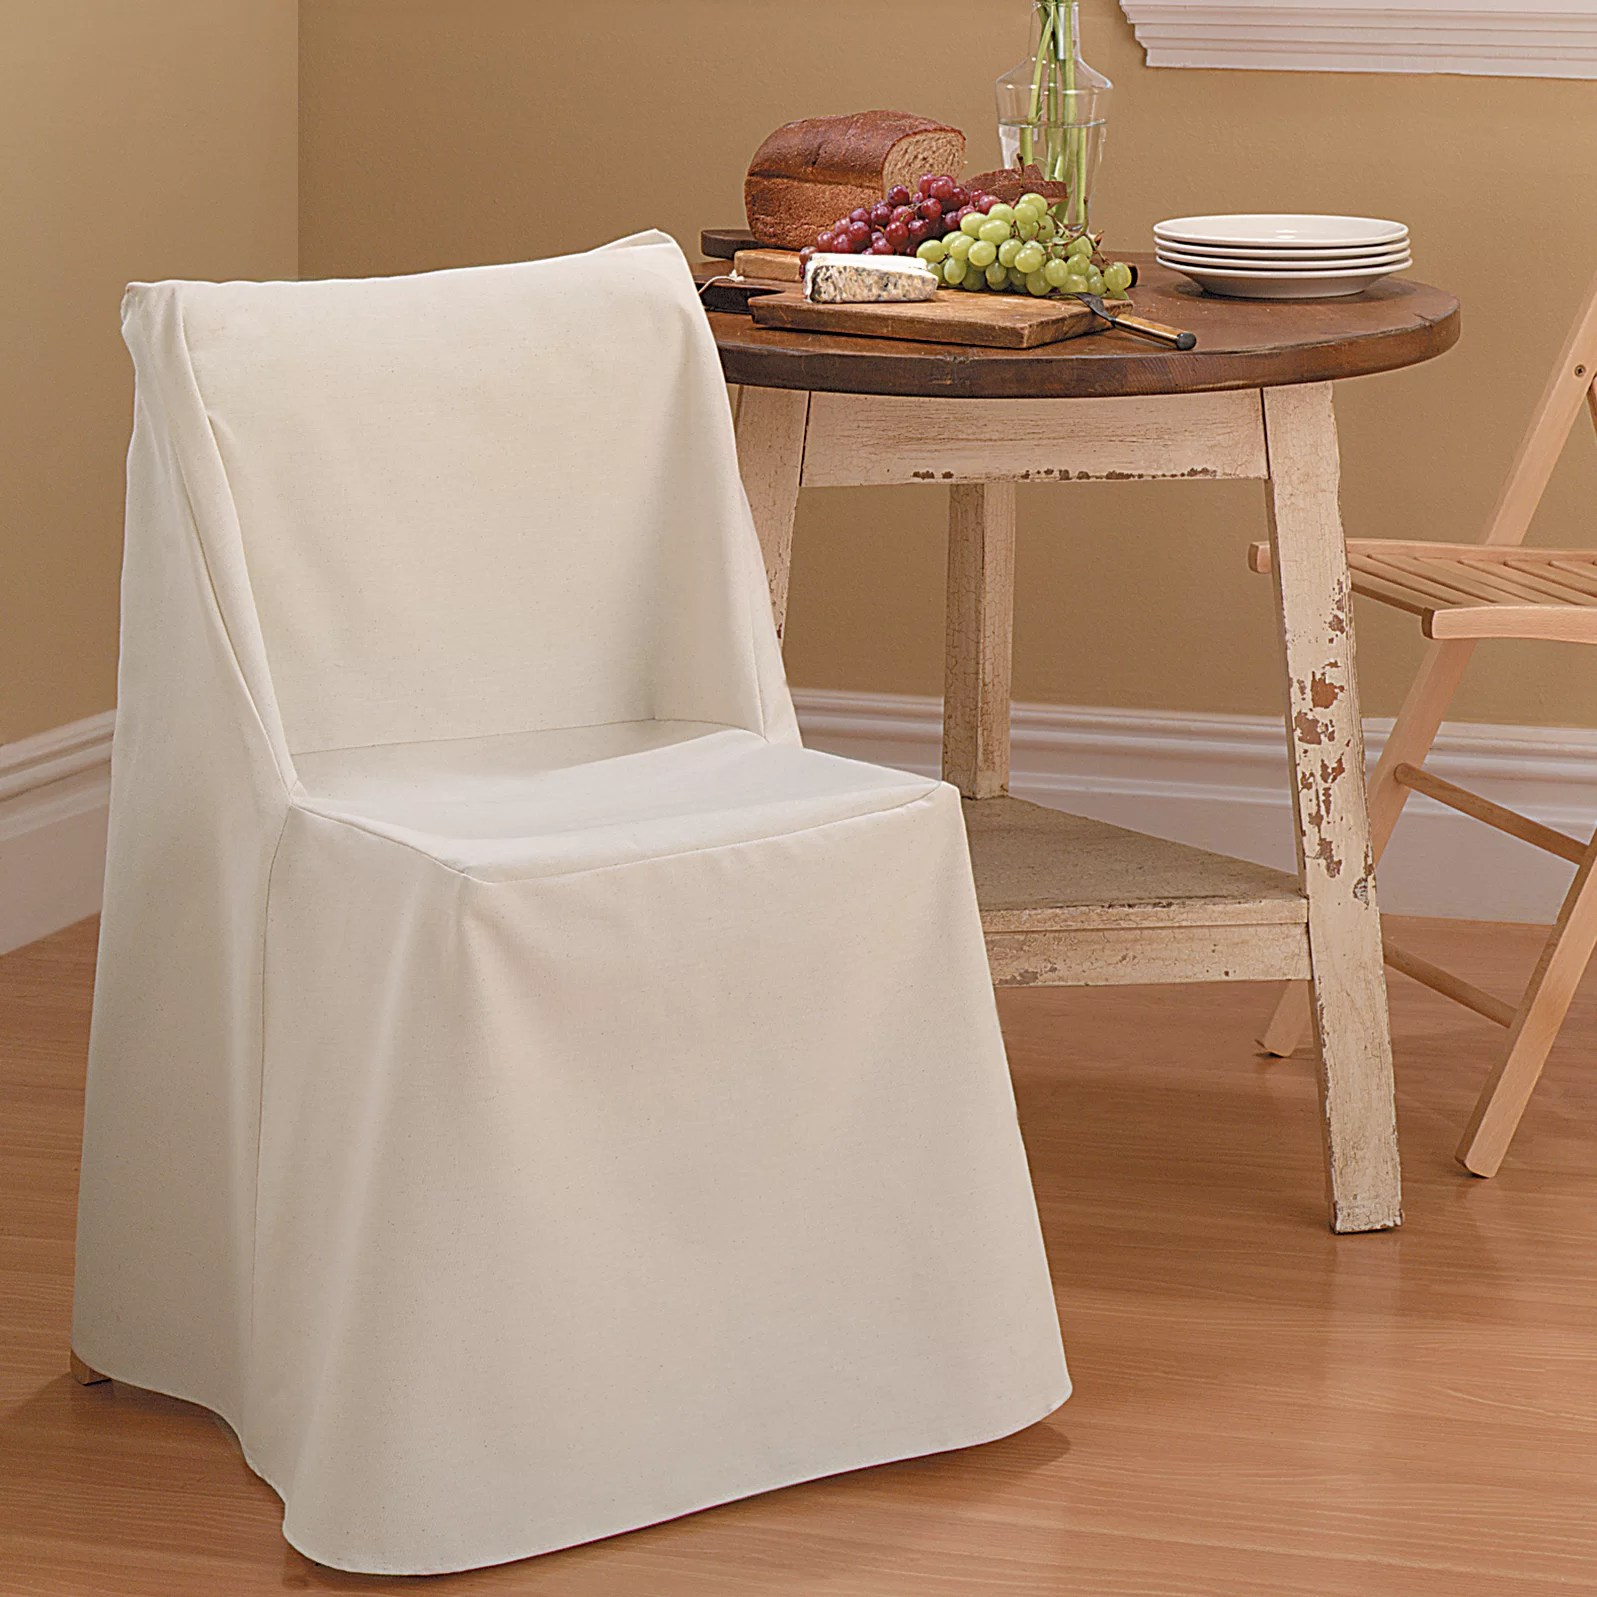 folding chair slipcovers child sized table and chairs set sure fit cotton duck slipcover reviews